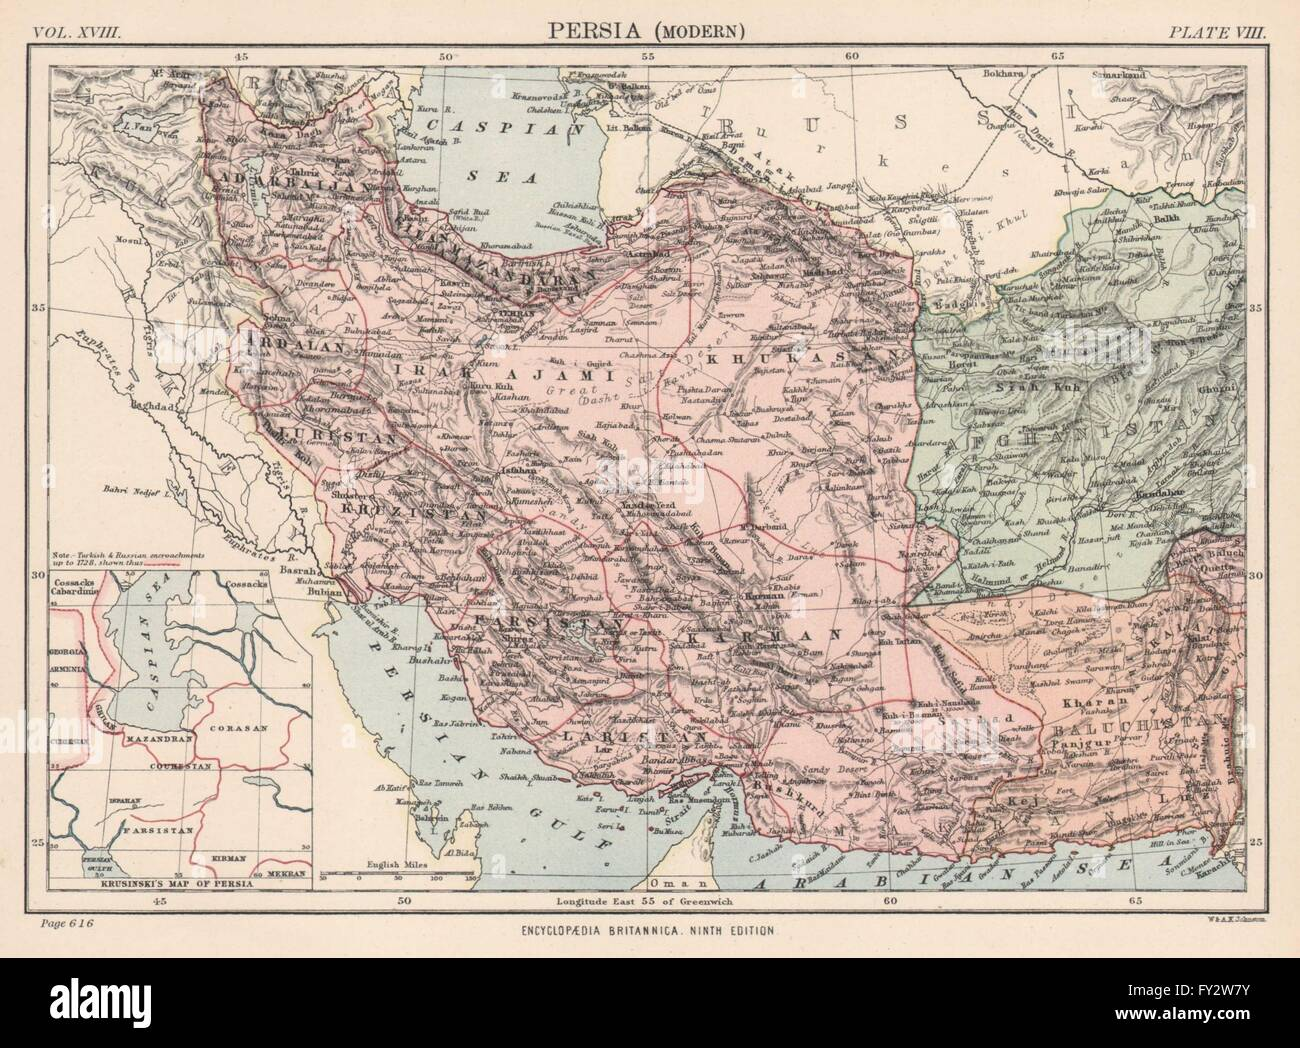 Inset Map Of Iran on grid map, wellington map, parallels on a map, general purpose map, world map, physical map, native alaskan language map, usa map, international border on a map, council of trent map, parts of a map, locator map, five elements of a map, breslau germany map, formosa on an asian map, scale on a map, elevation map, edinburgh postcode map, calgary canada map, political map,